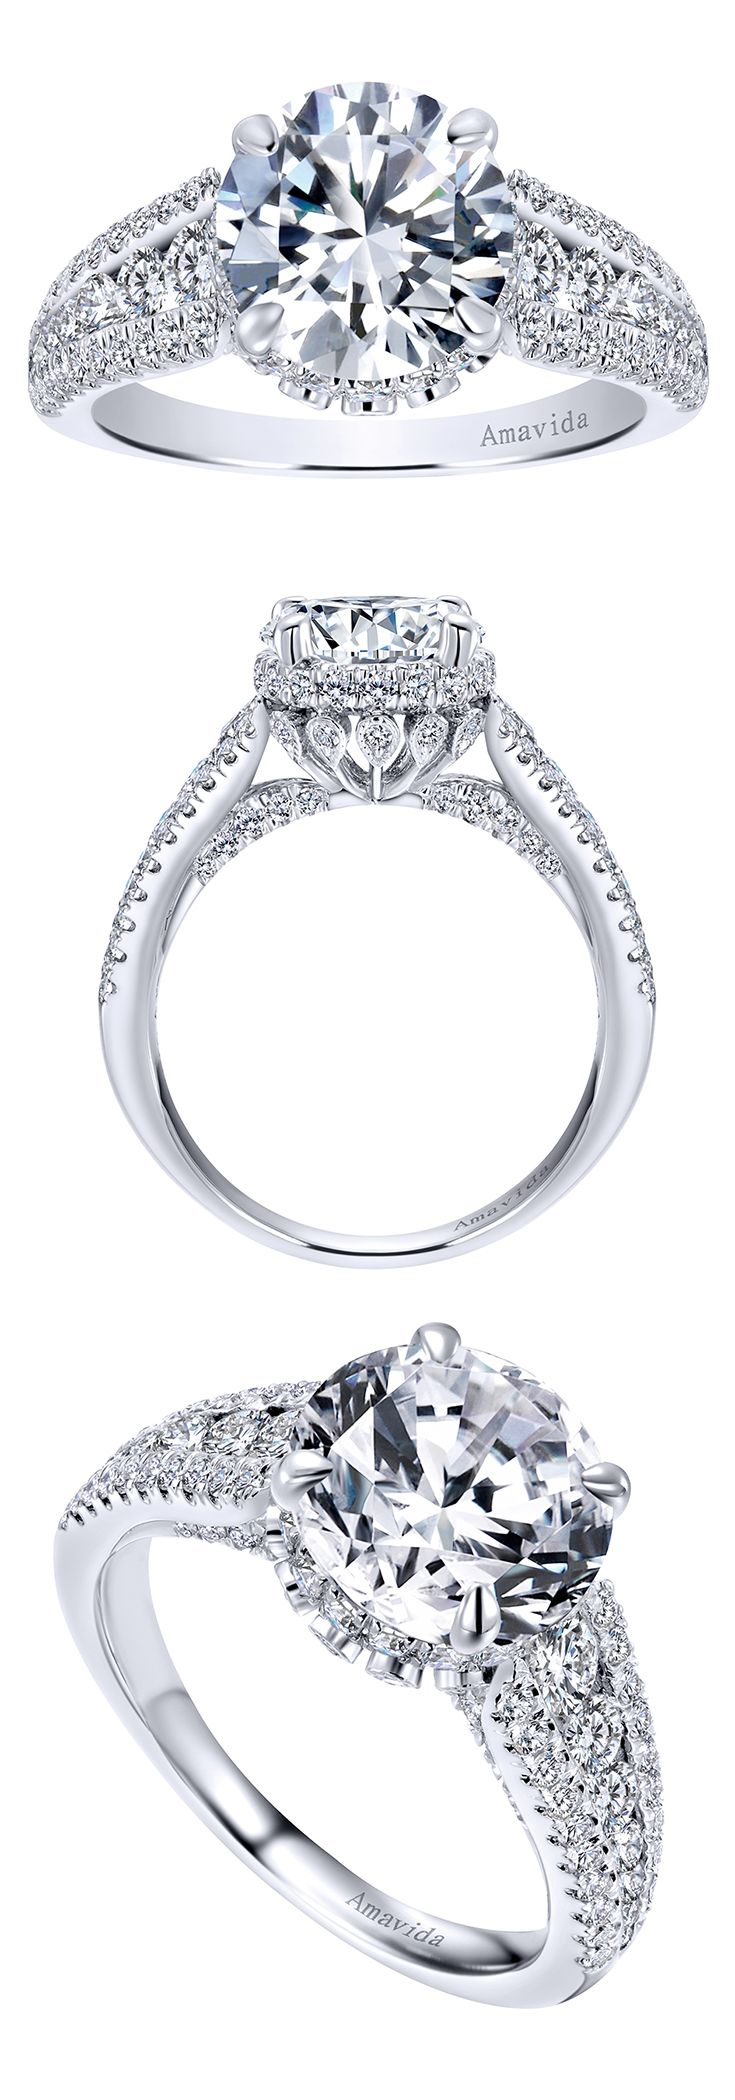 From the Amavida Collection, an 18k White Gold Contemporary Halo Engagement Ring.